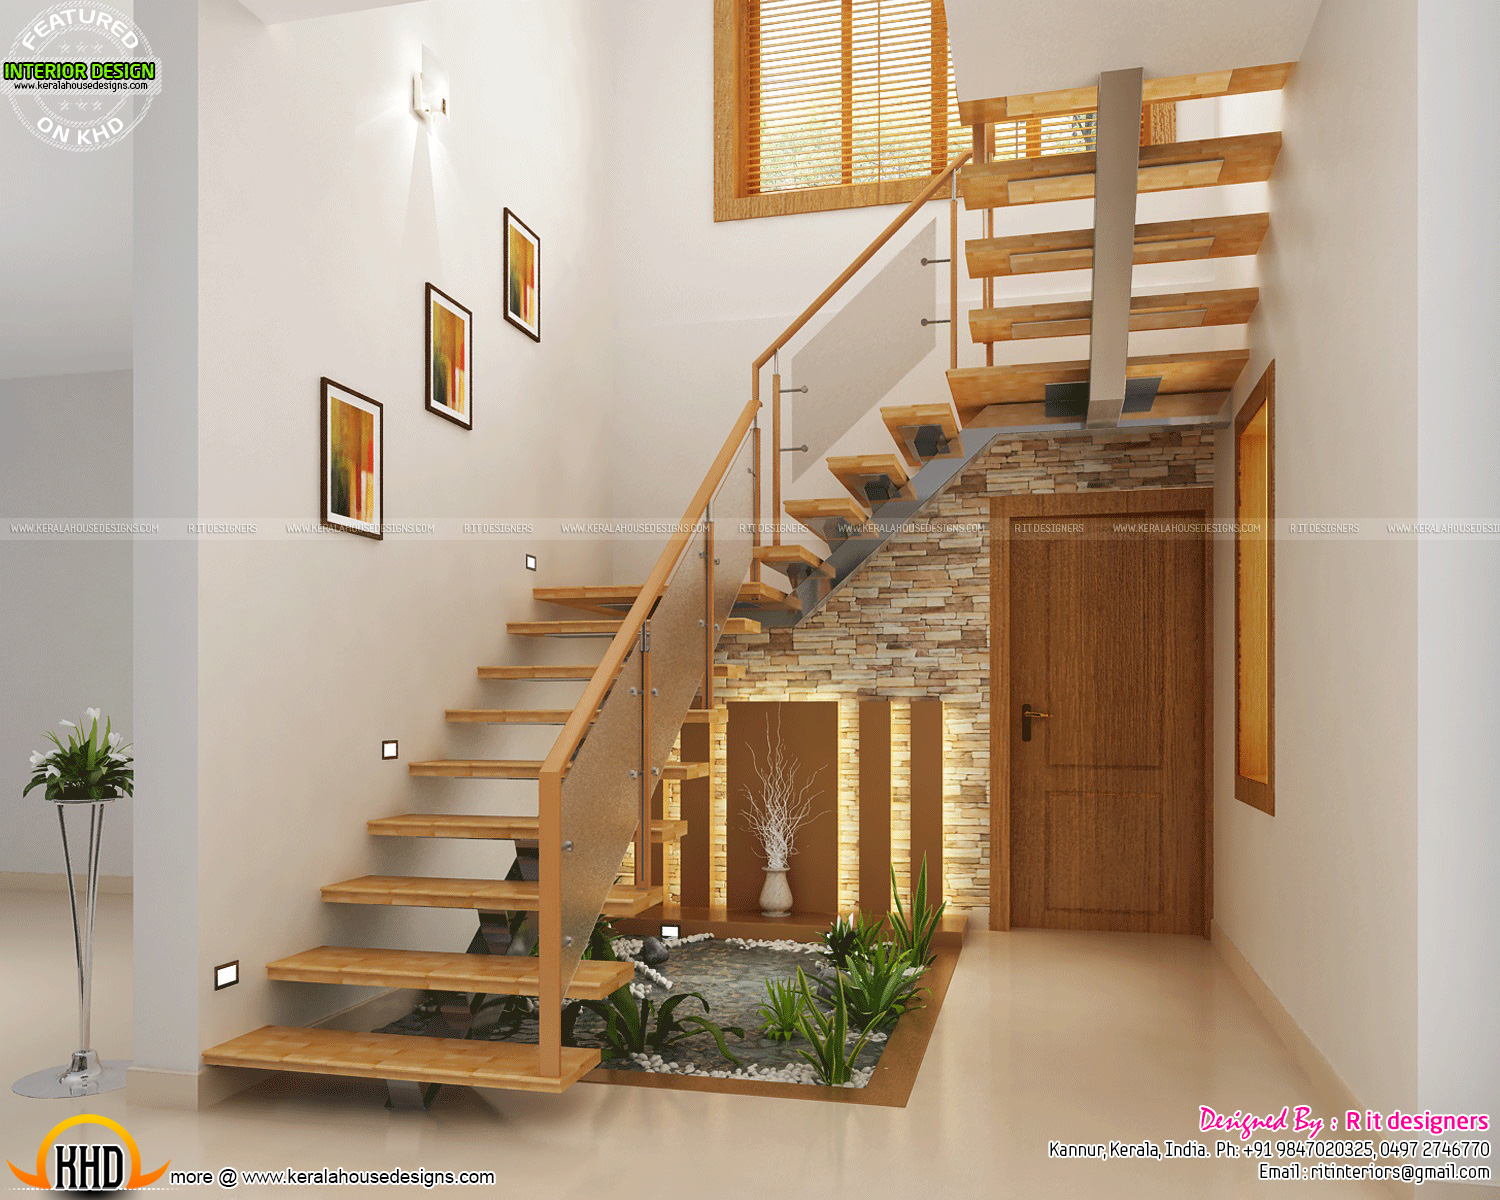 Under stair design wooden stair kitchen and living for House designs interior photos